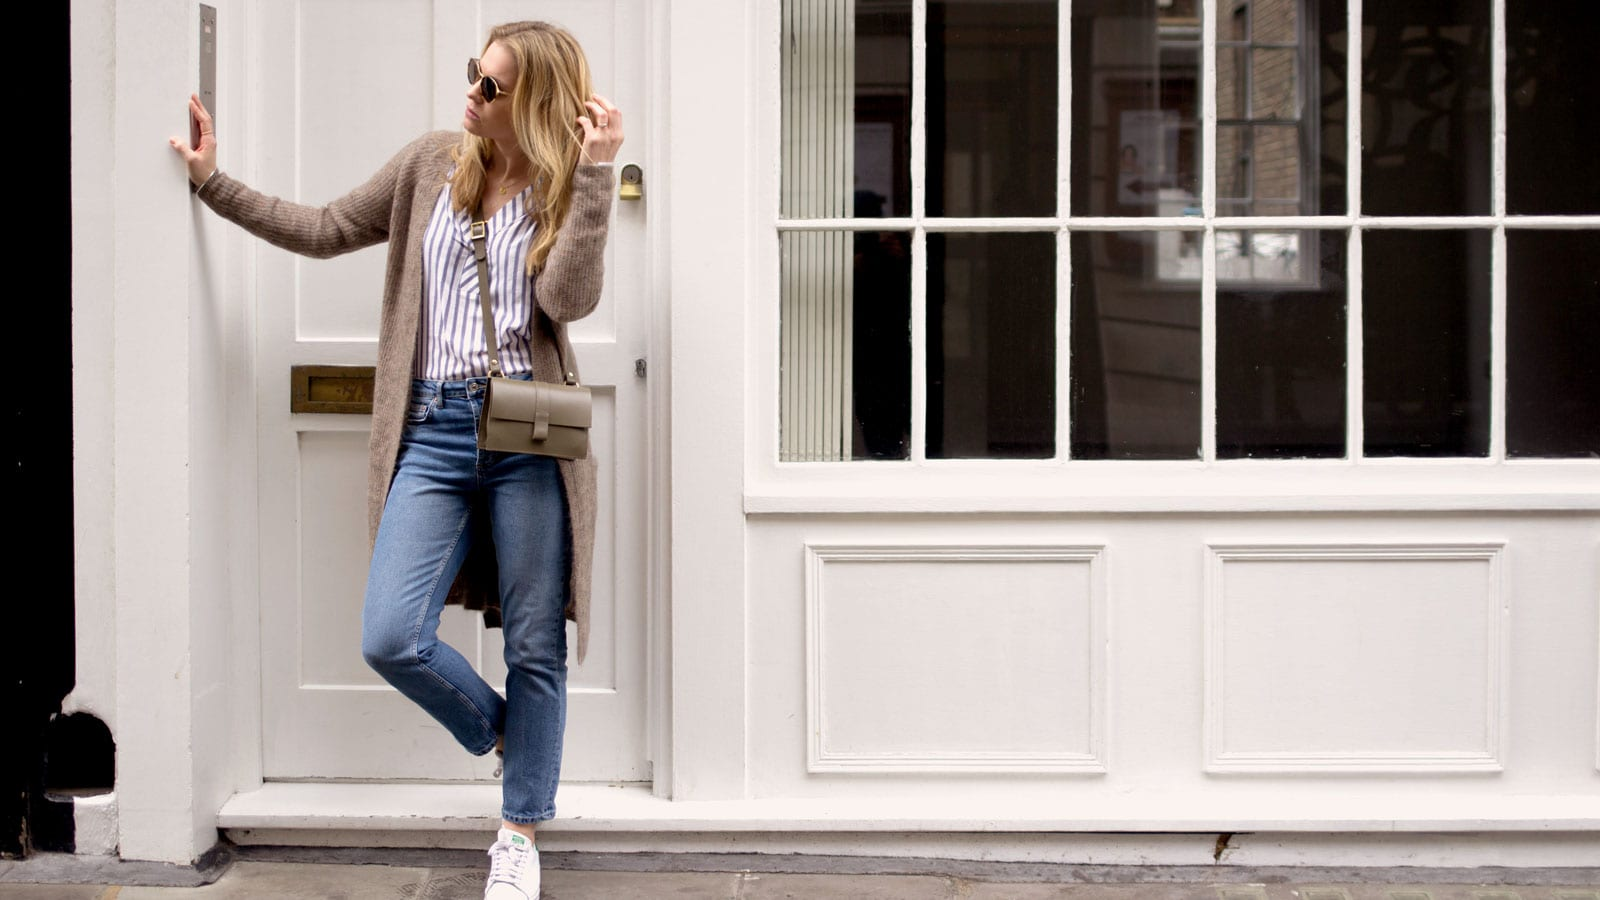 Style&Minimalism | It's Personal | Second Female Stripe Blouse, Second Female Brown Cardigan, Topshop straight Jeans, Danielle Foster Charlie Bag and Ace & Tate Sunglasses